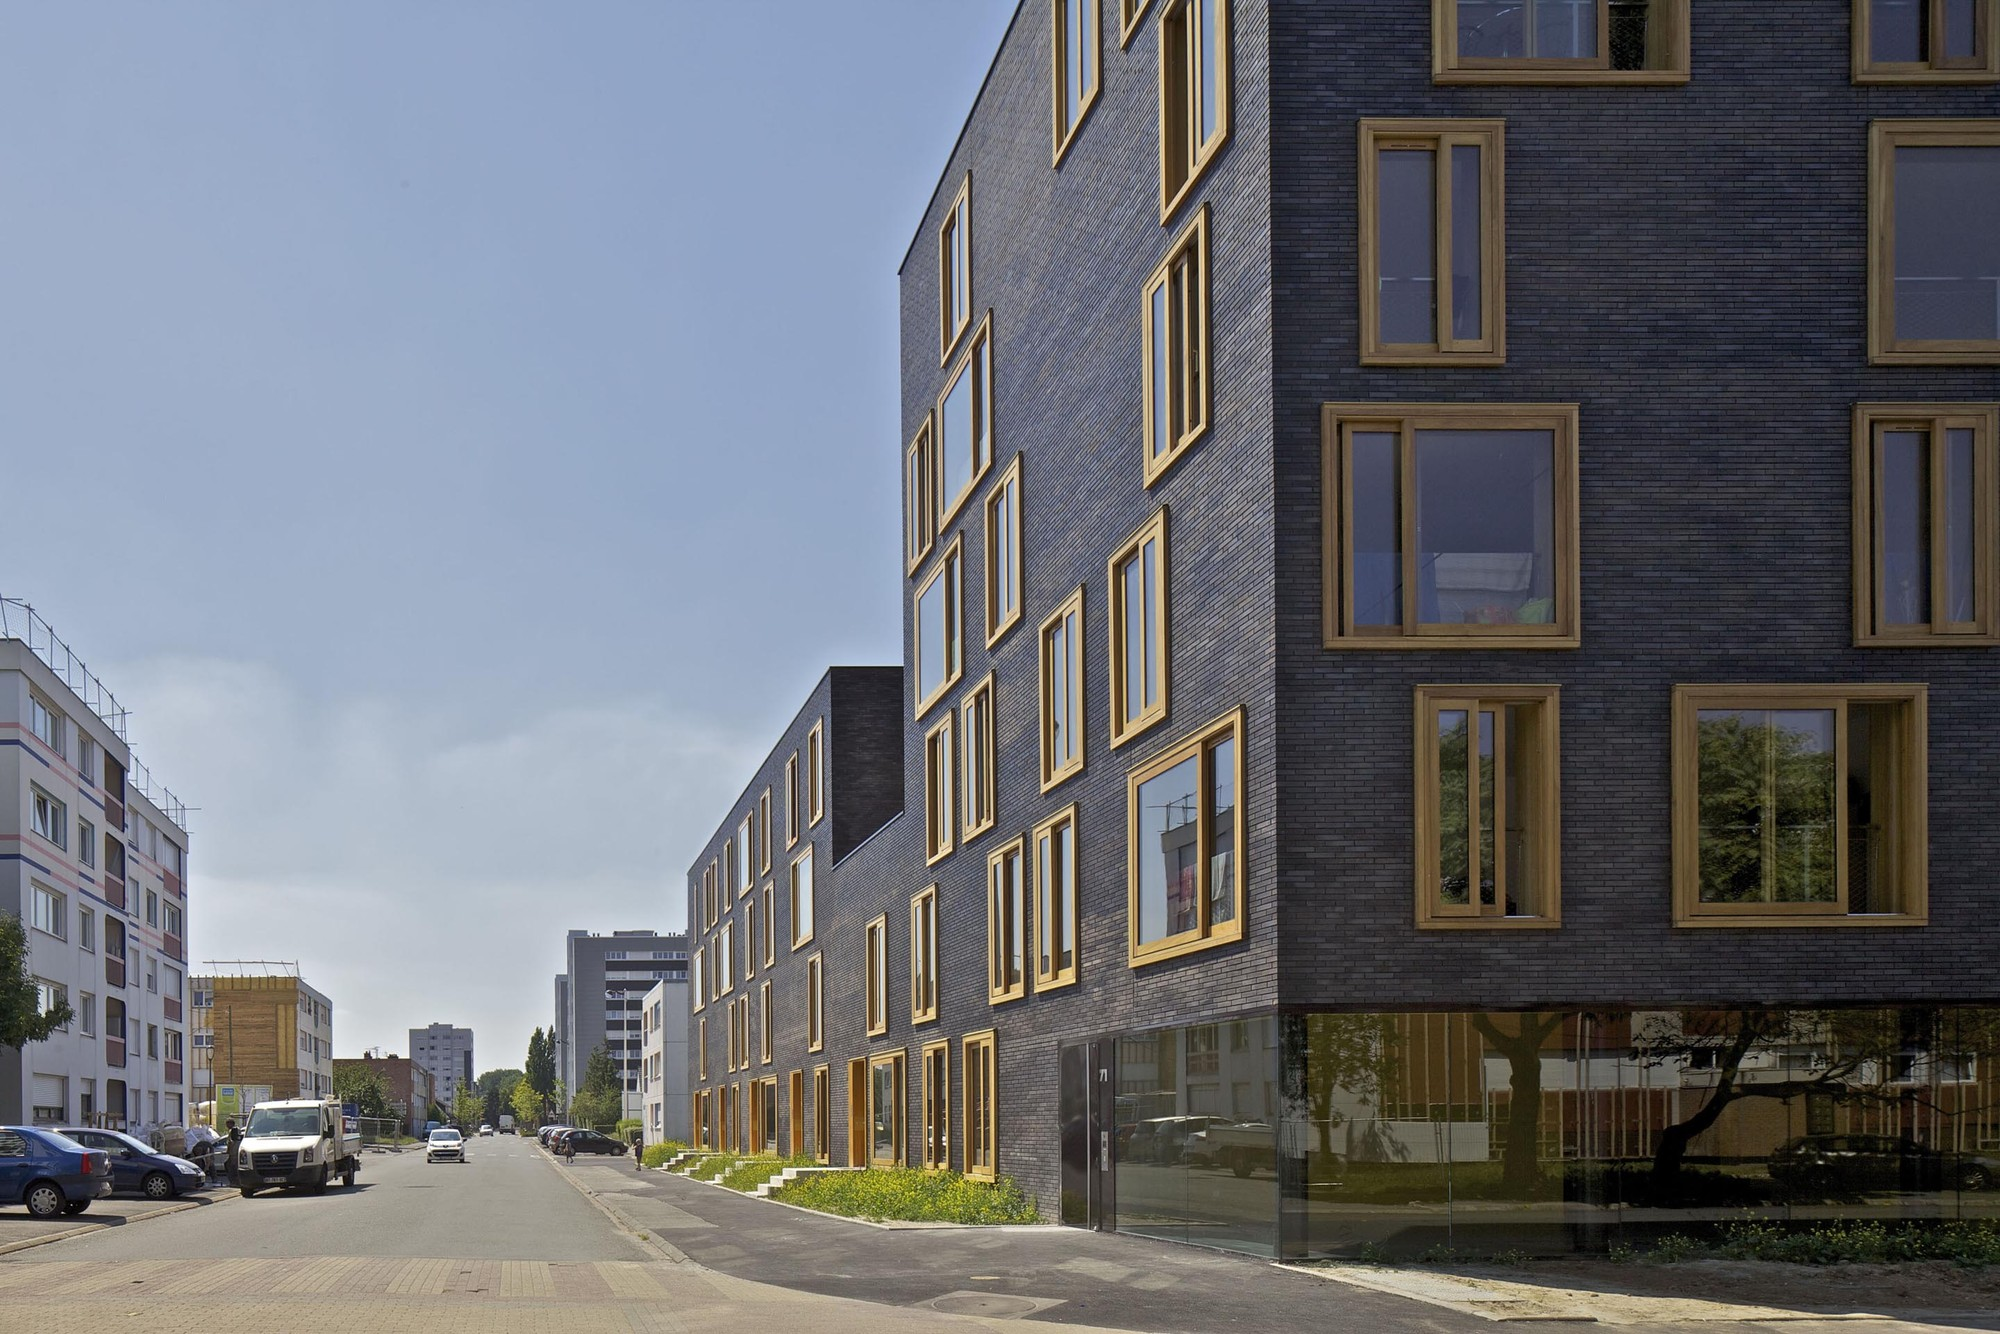 Gallery of hollande b thune social housing fres for Fres architectes